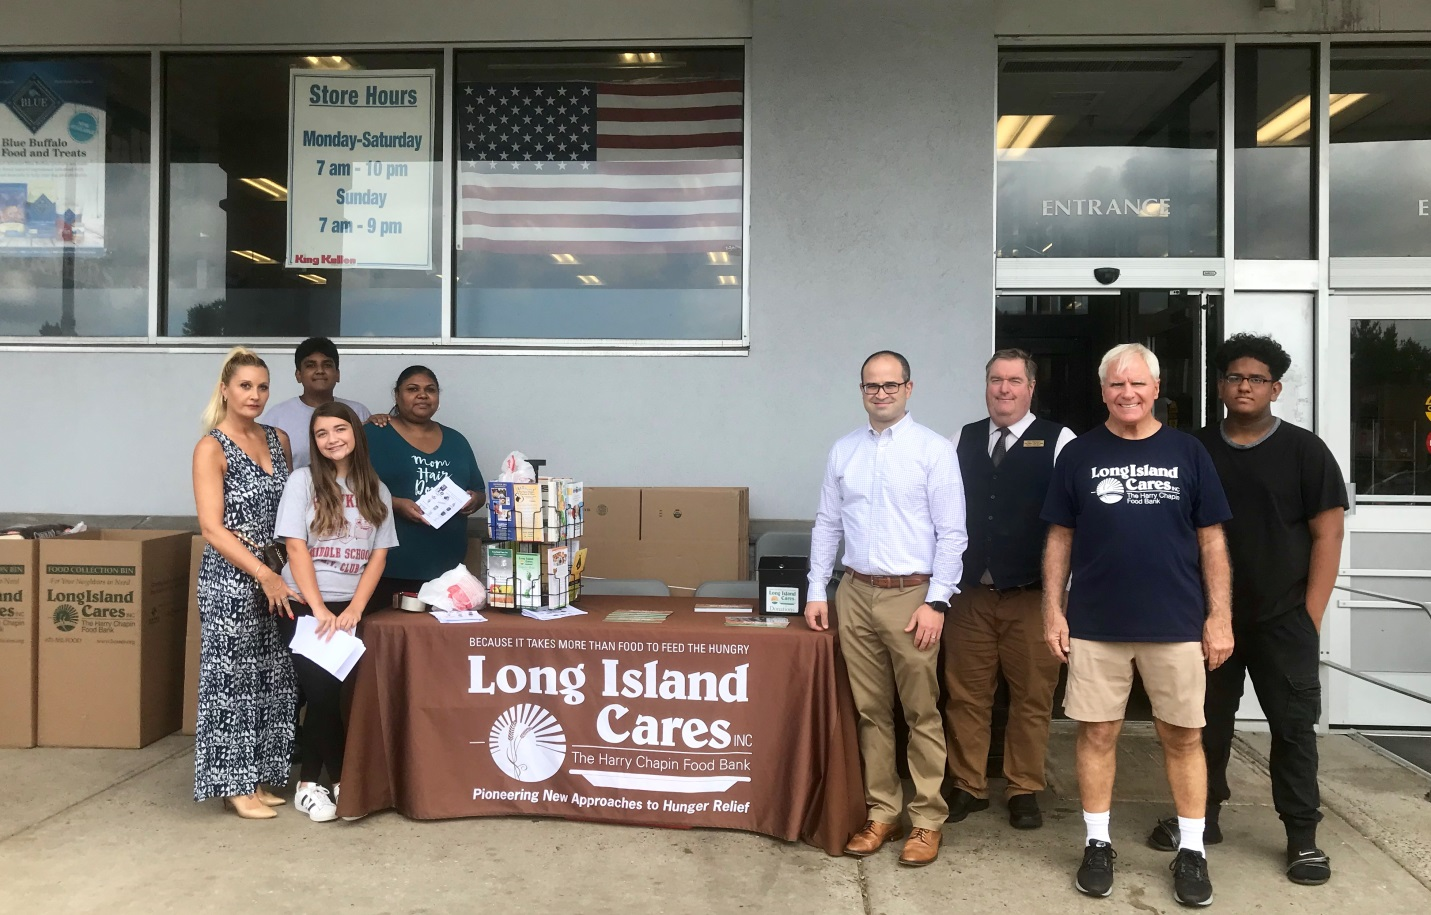 (From left to right) Volunteers Suren Aromogan (back), Meena Armogan (back), Nuria Angos (front), Sofia Carter (front), Assemblyman Ed Ra (R-Franklin Square), Bud Stengren, King Kullen store manager,